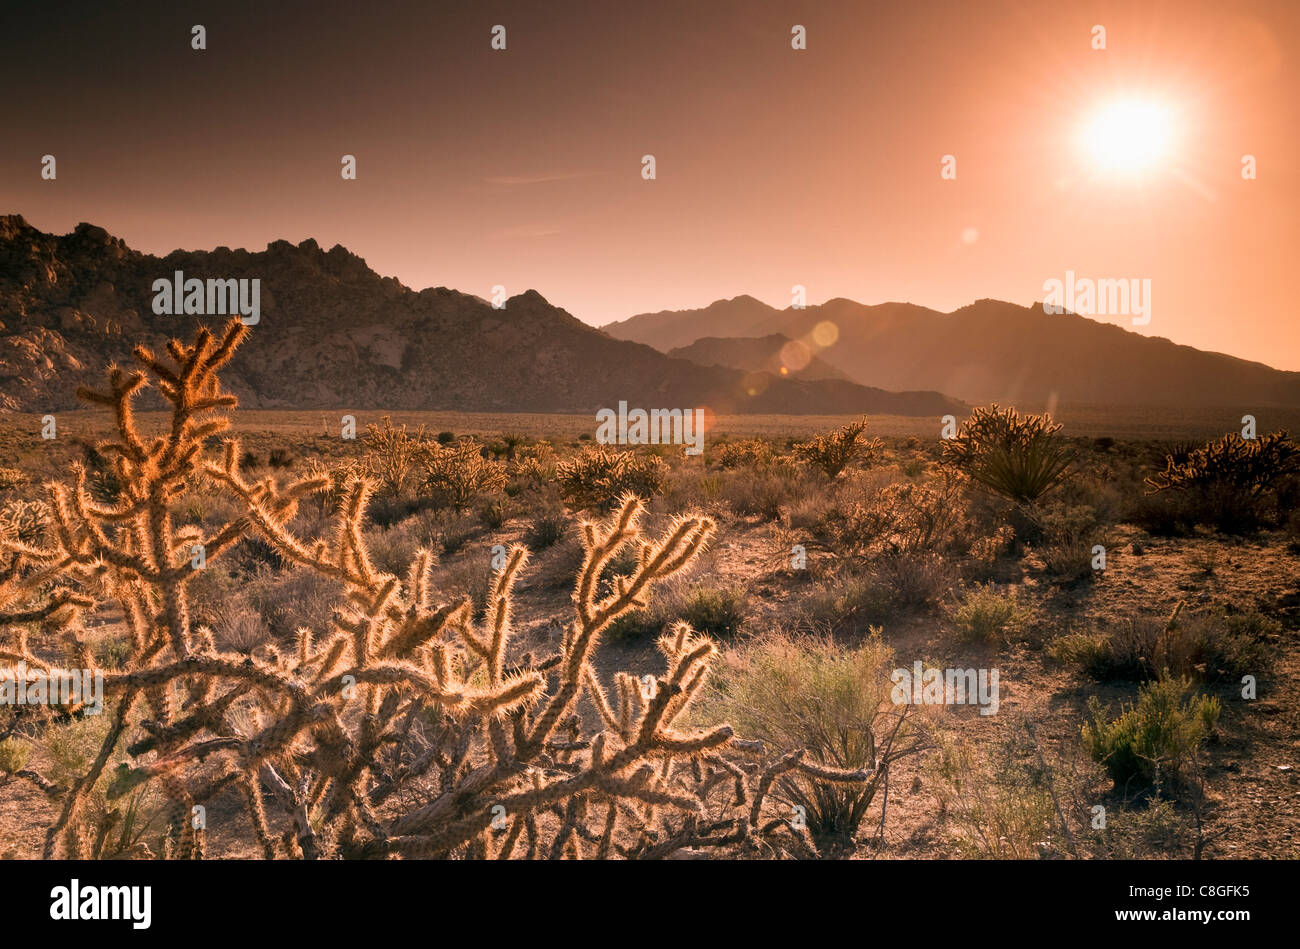 Mojave National Preserve, Granite Mountains in background, California, United States of America - Stock Image